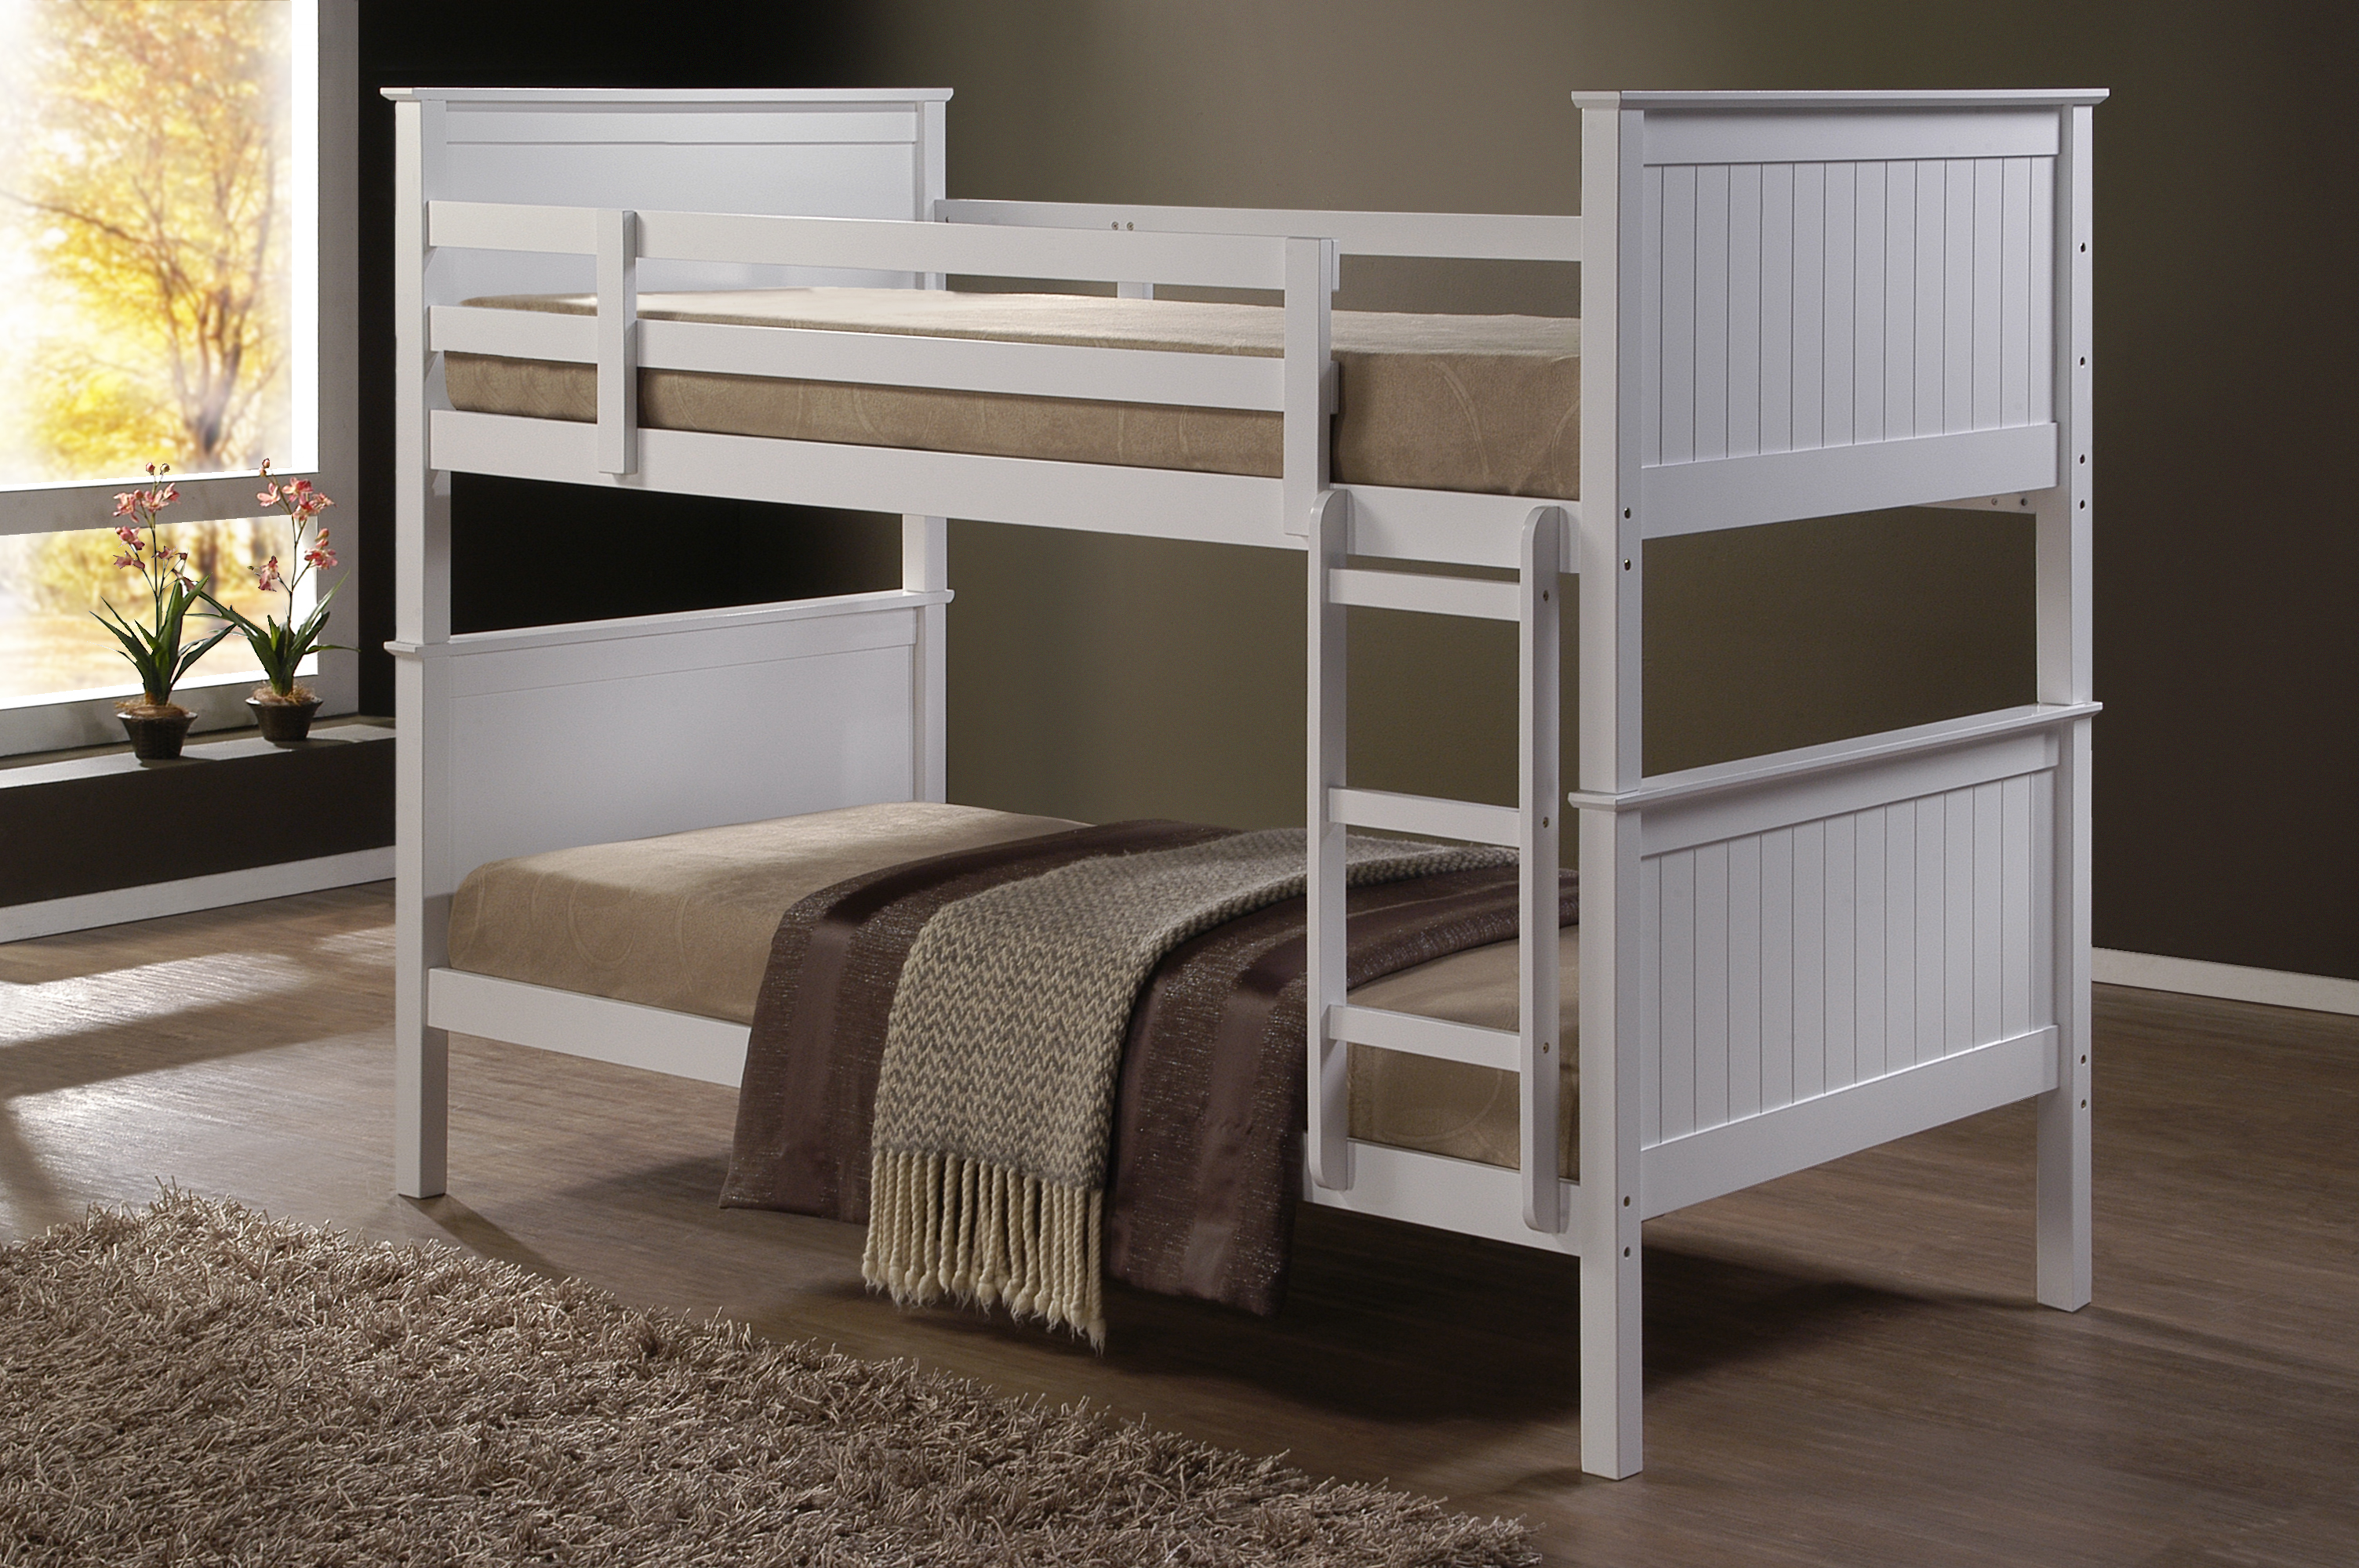 Kids Bunk Beds Are Getting To Be Classier And Classier All Of The Time